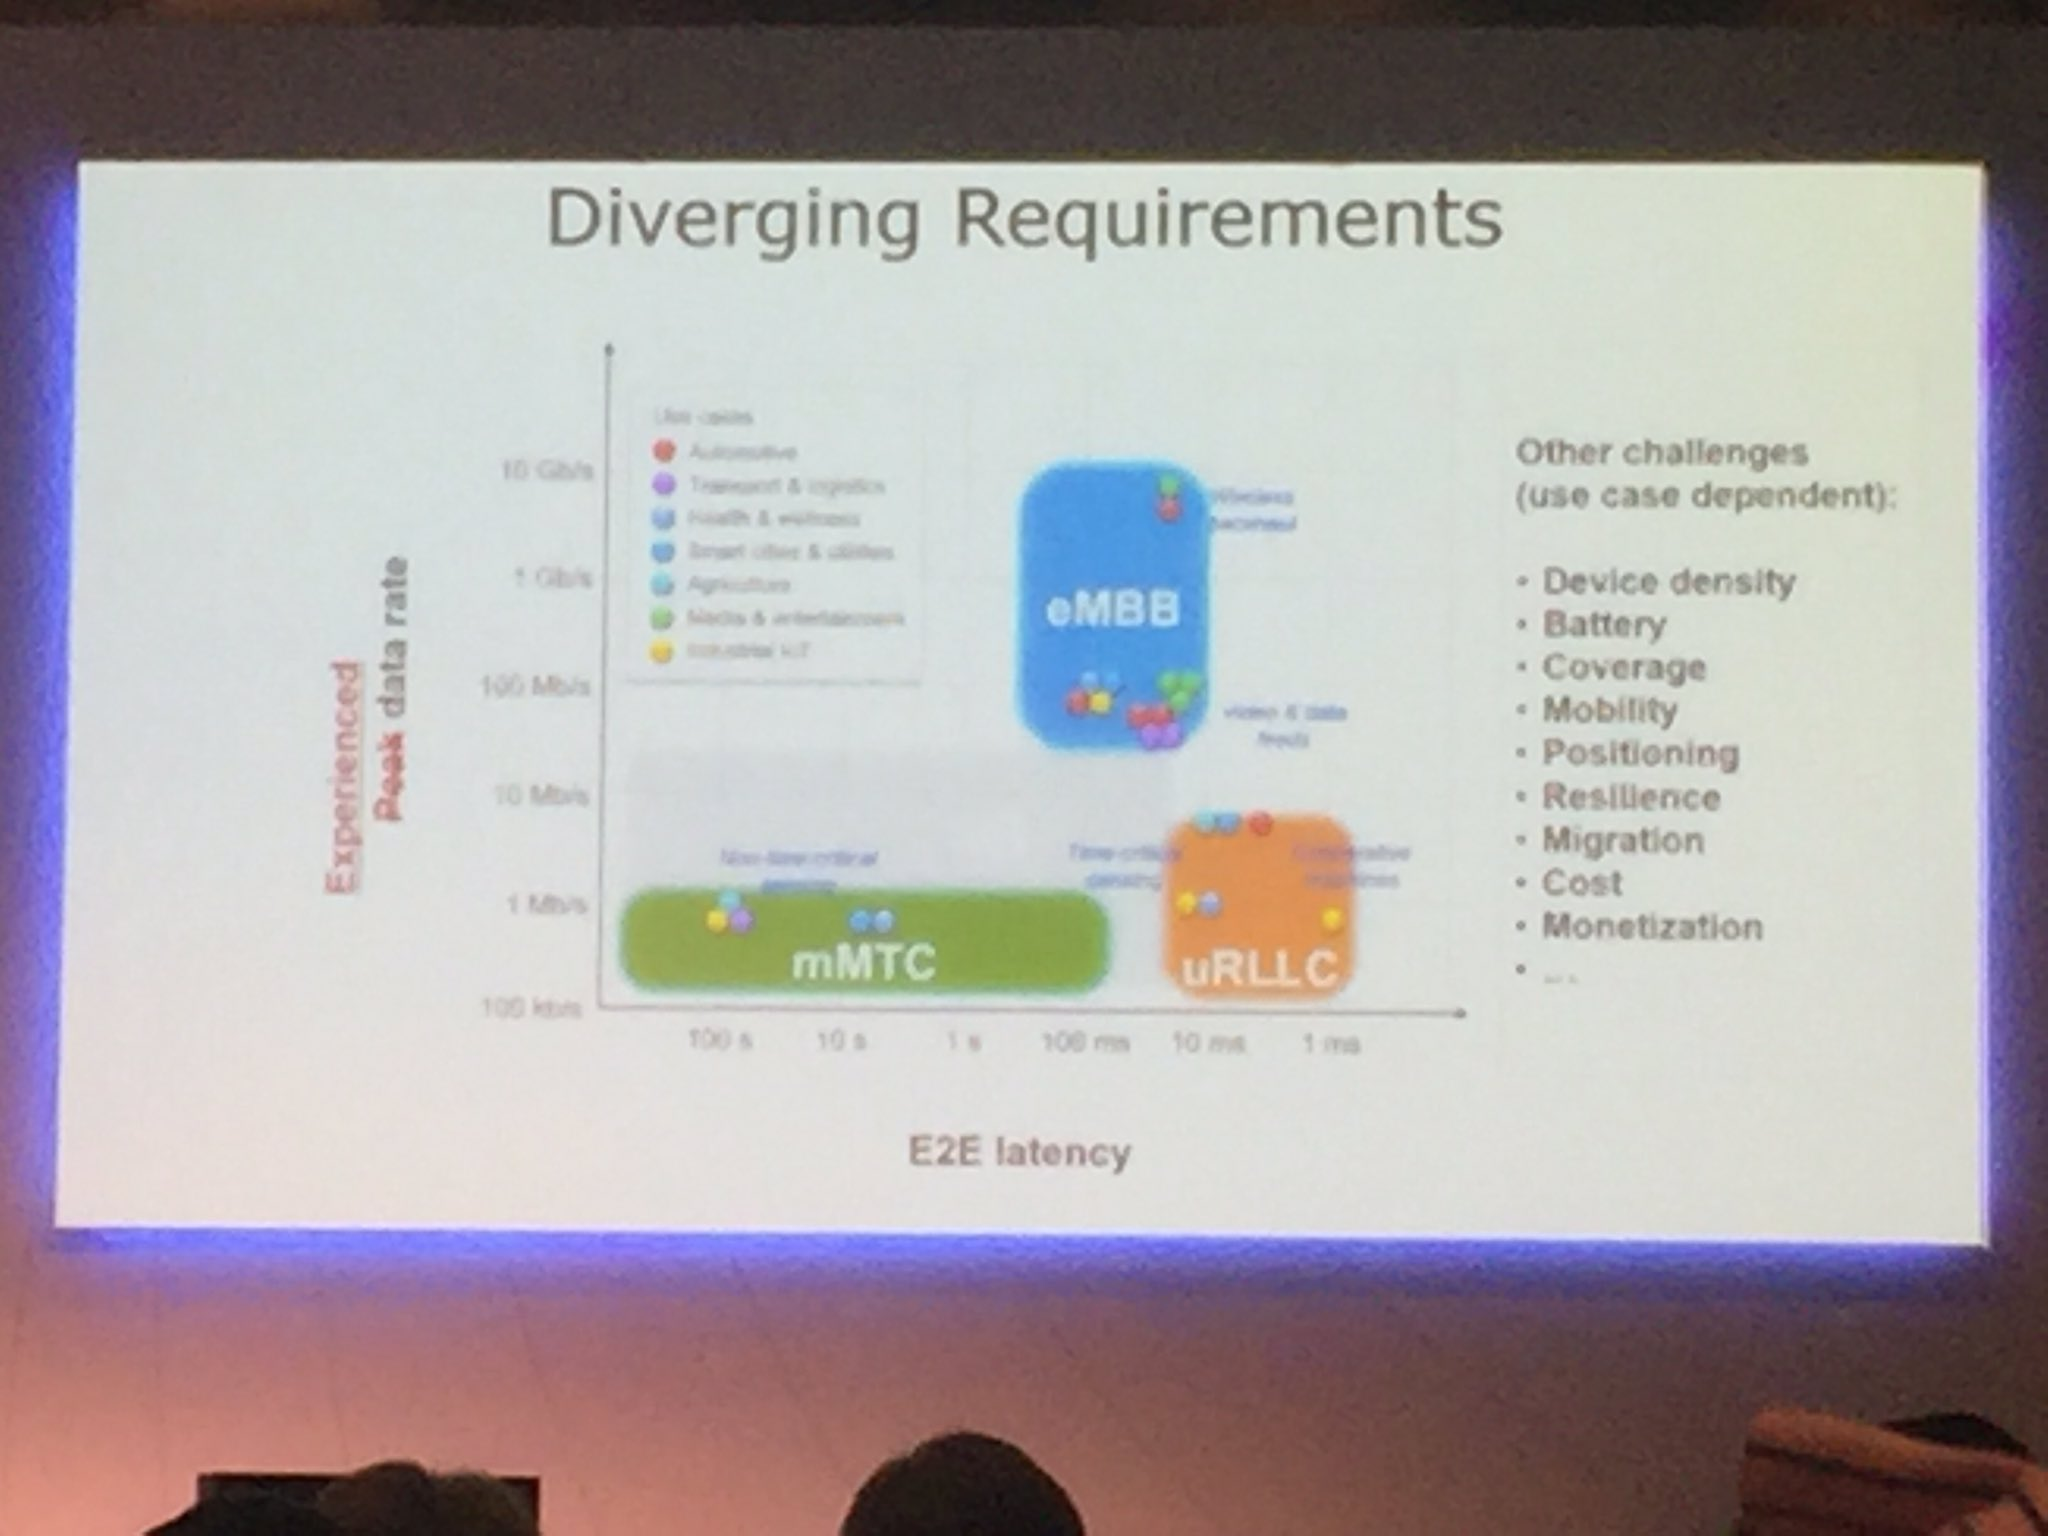 NTT CTO Onoe-san  provides an excellent 5G vertical requirements analysis #NGMN_ICE2016 https://t.co/bwbpn08Squ